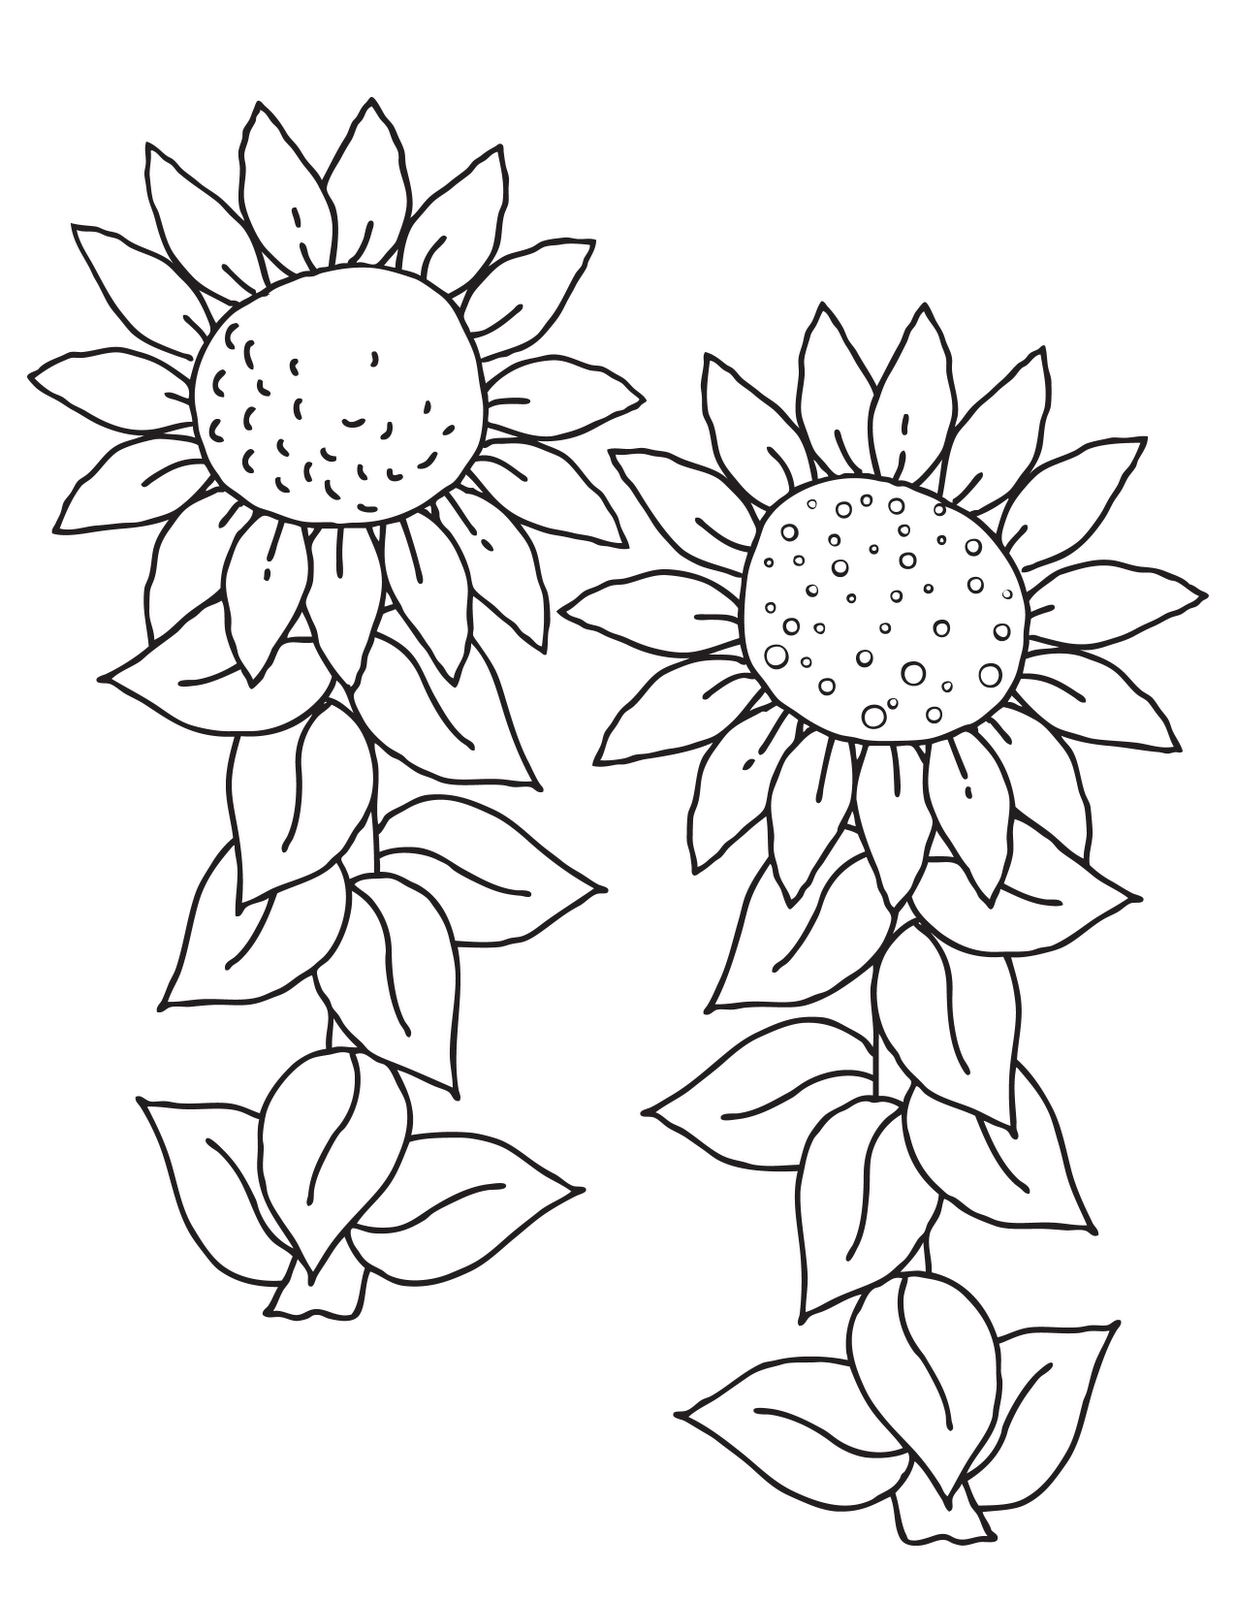 Daisies Digis and Doodads Free Digi Stamps Digital Design Team